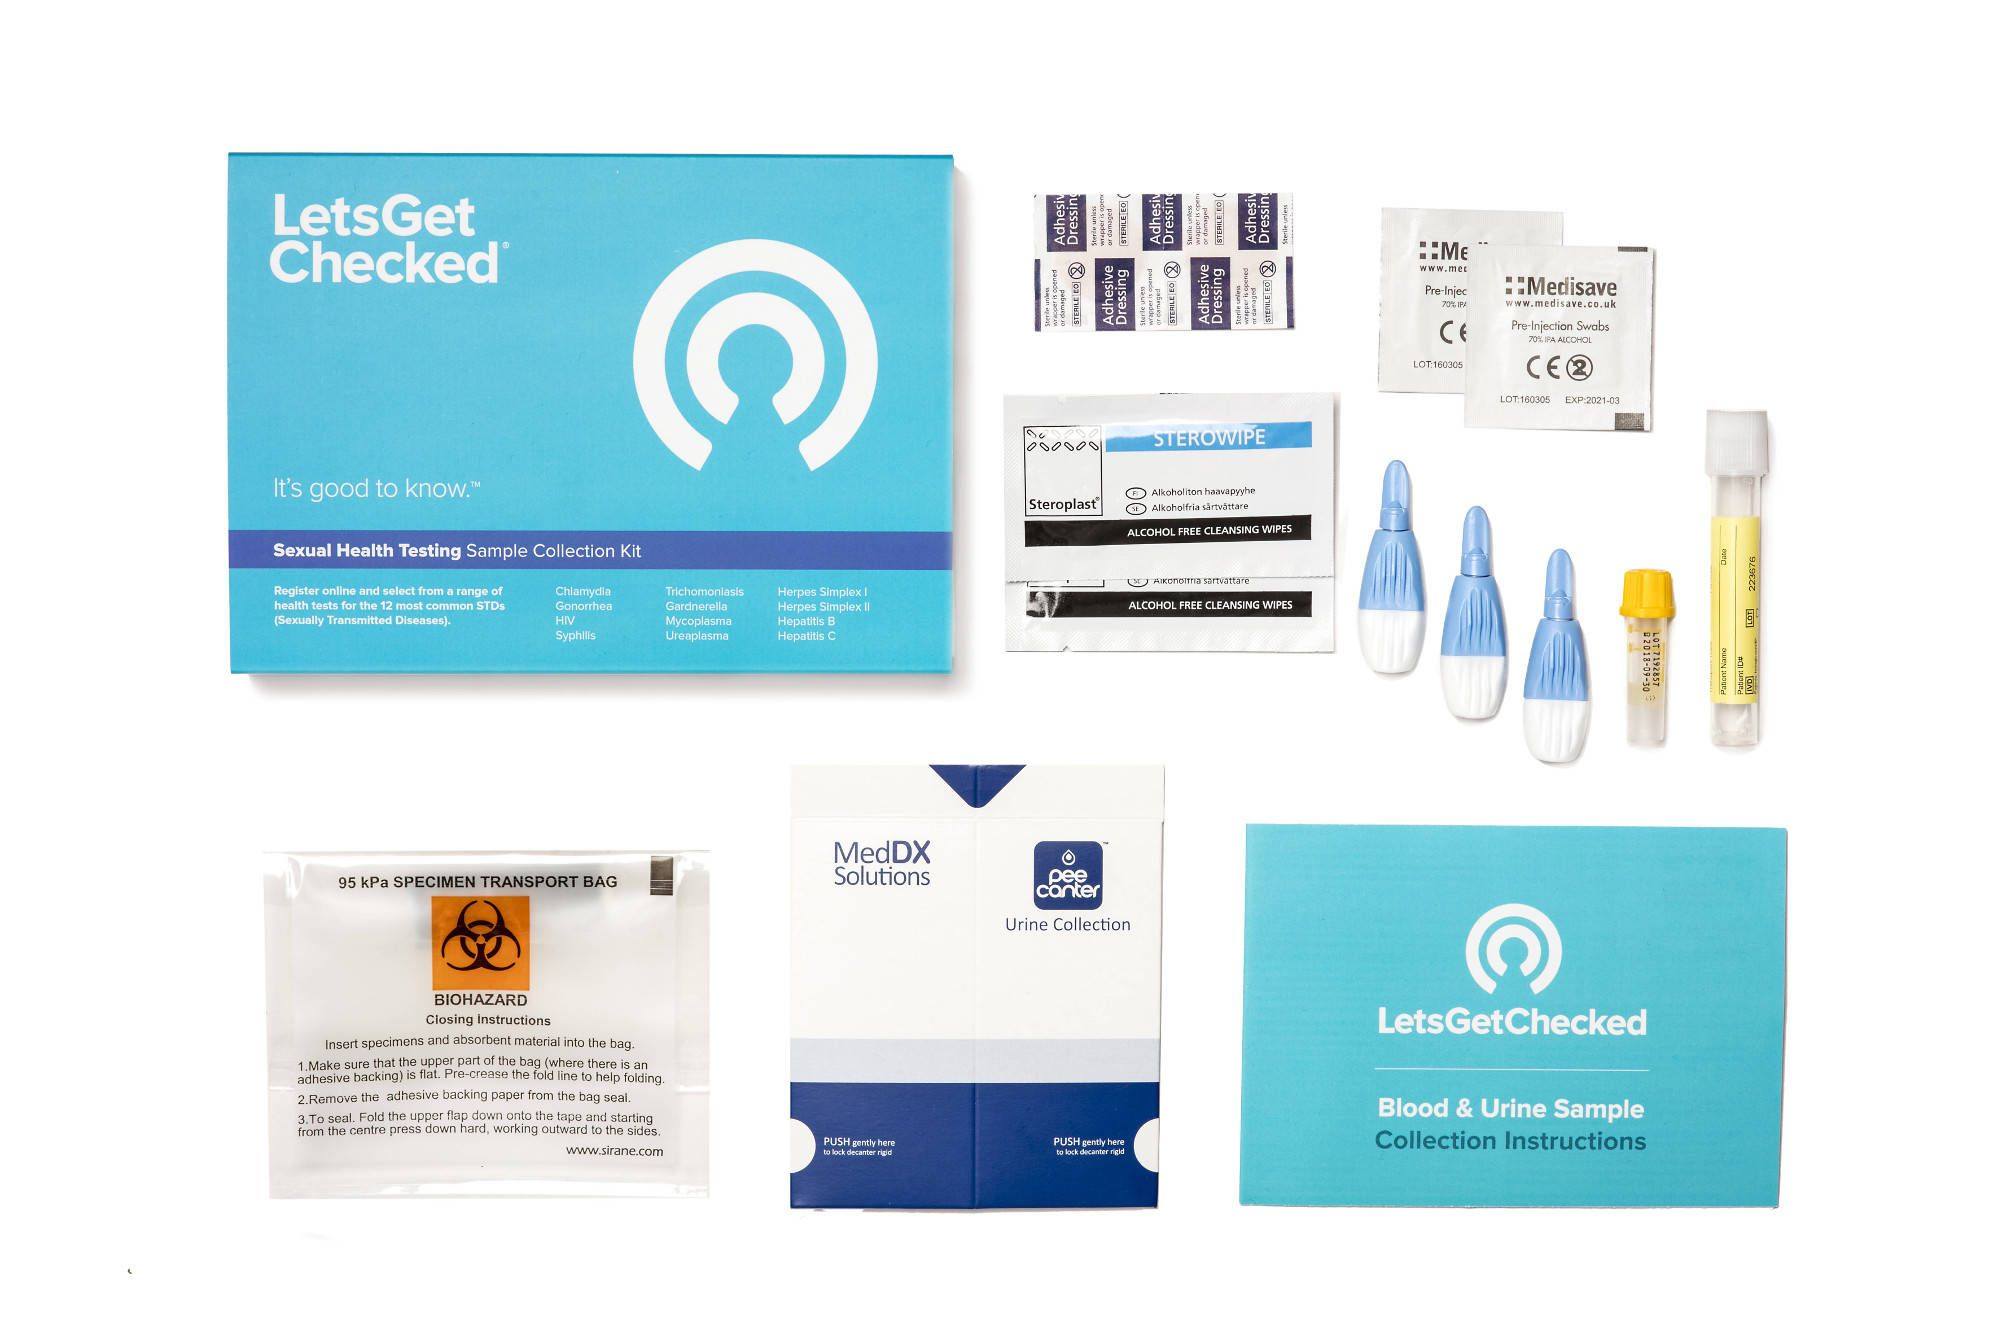 letsgetchecked-std-home-test-kit-content-of-test